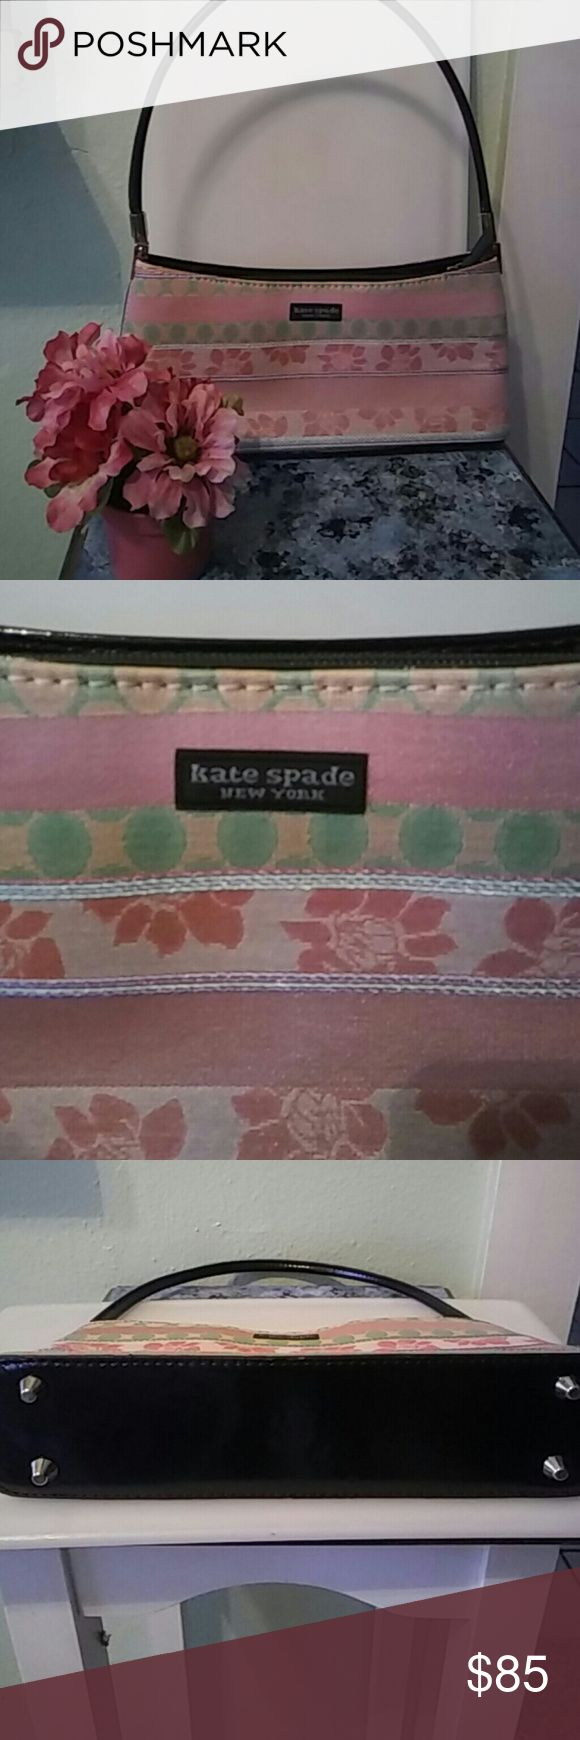 💖SALE💖KATE SPADE HANDBAG Authentic gorgeous Kate Spade handbag in mint condition excellent pre-loved condition beautiful colors very clean inside and out would make a great gift comes in a beautiful gift box.💖 NWOT.  **FIRM** **MINT CONDITION**LOWEST DROP IN PRICE** Kate spade Bags Mini Bags